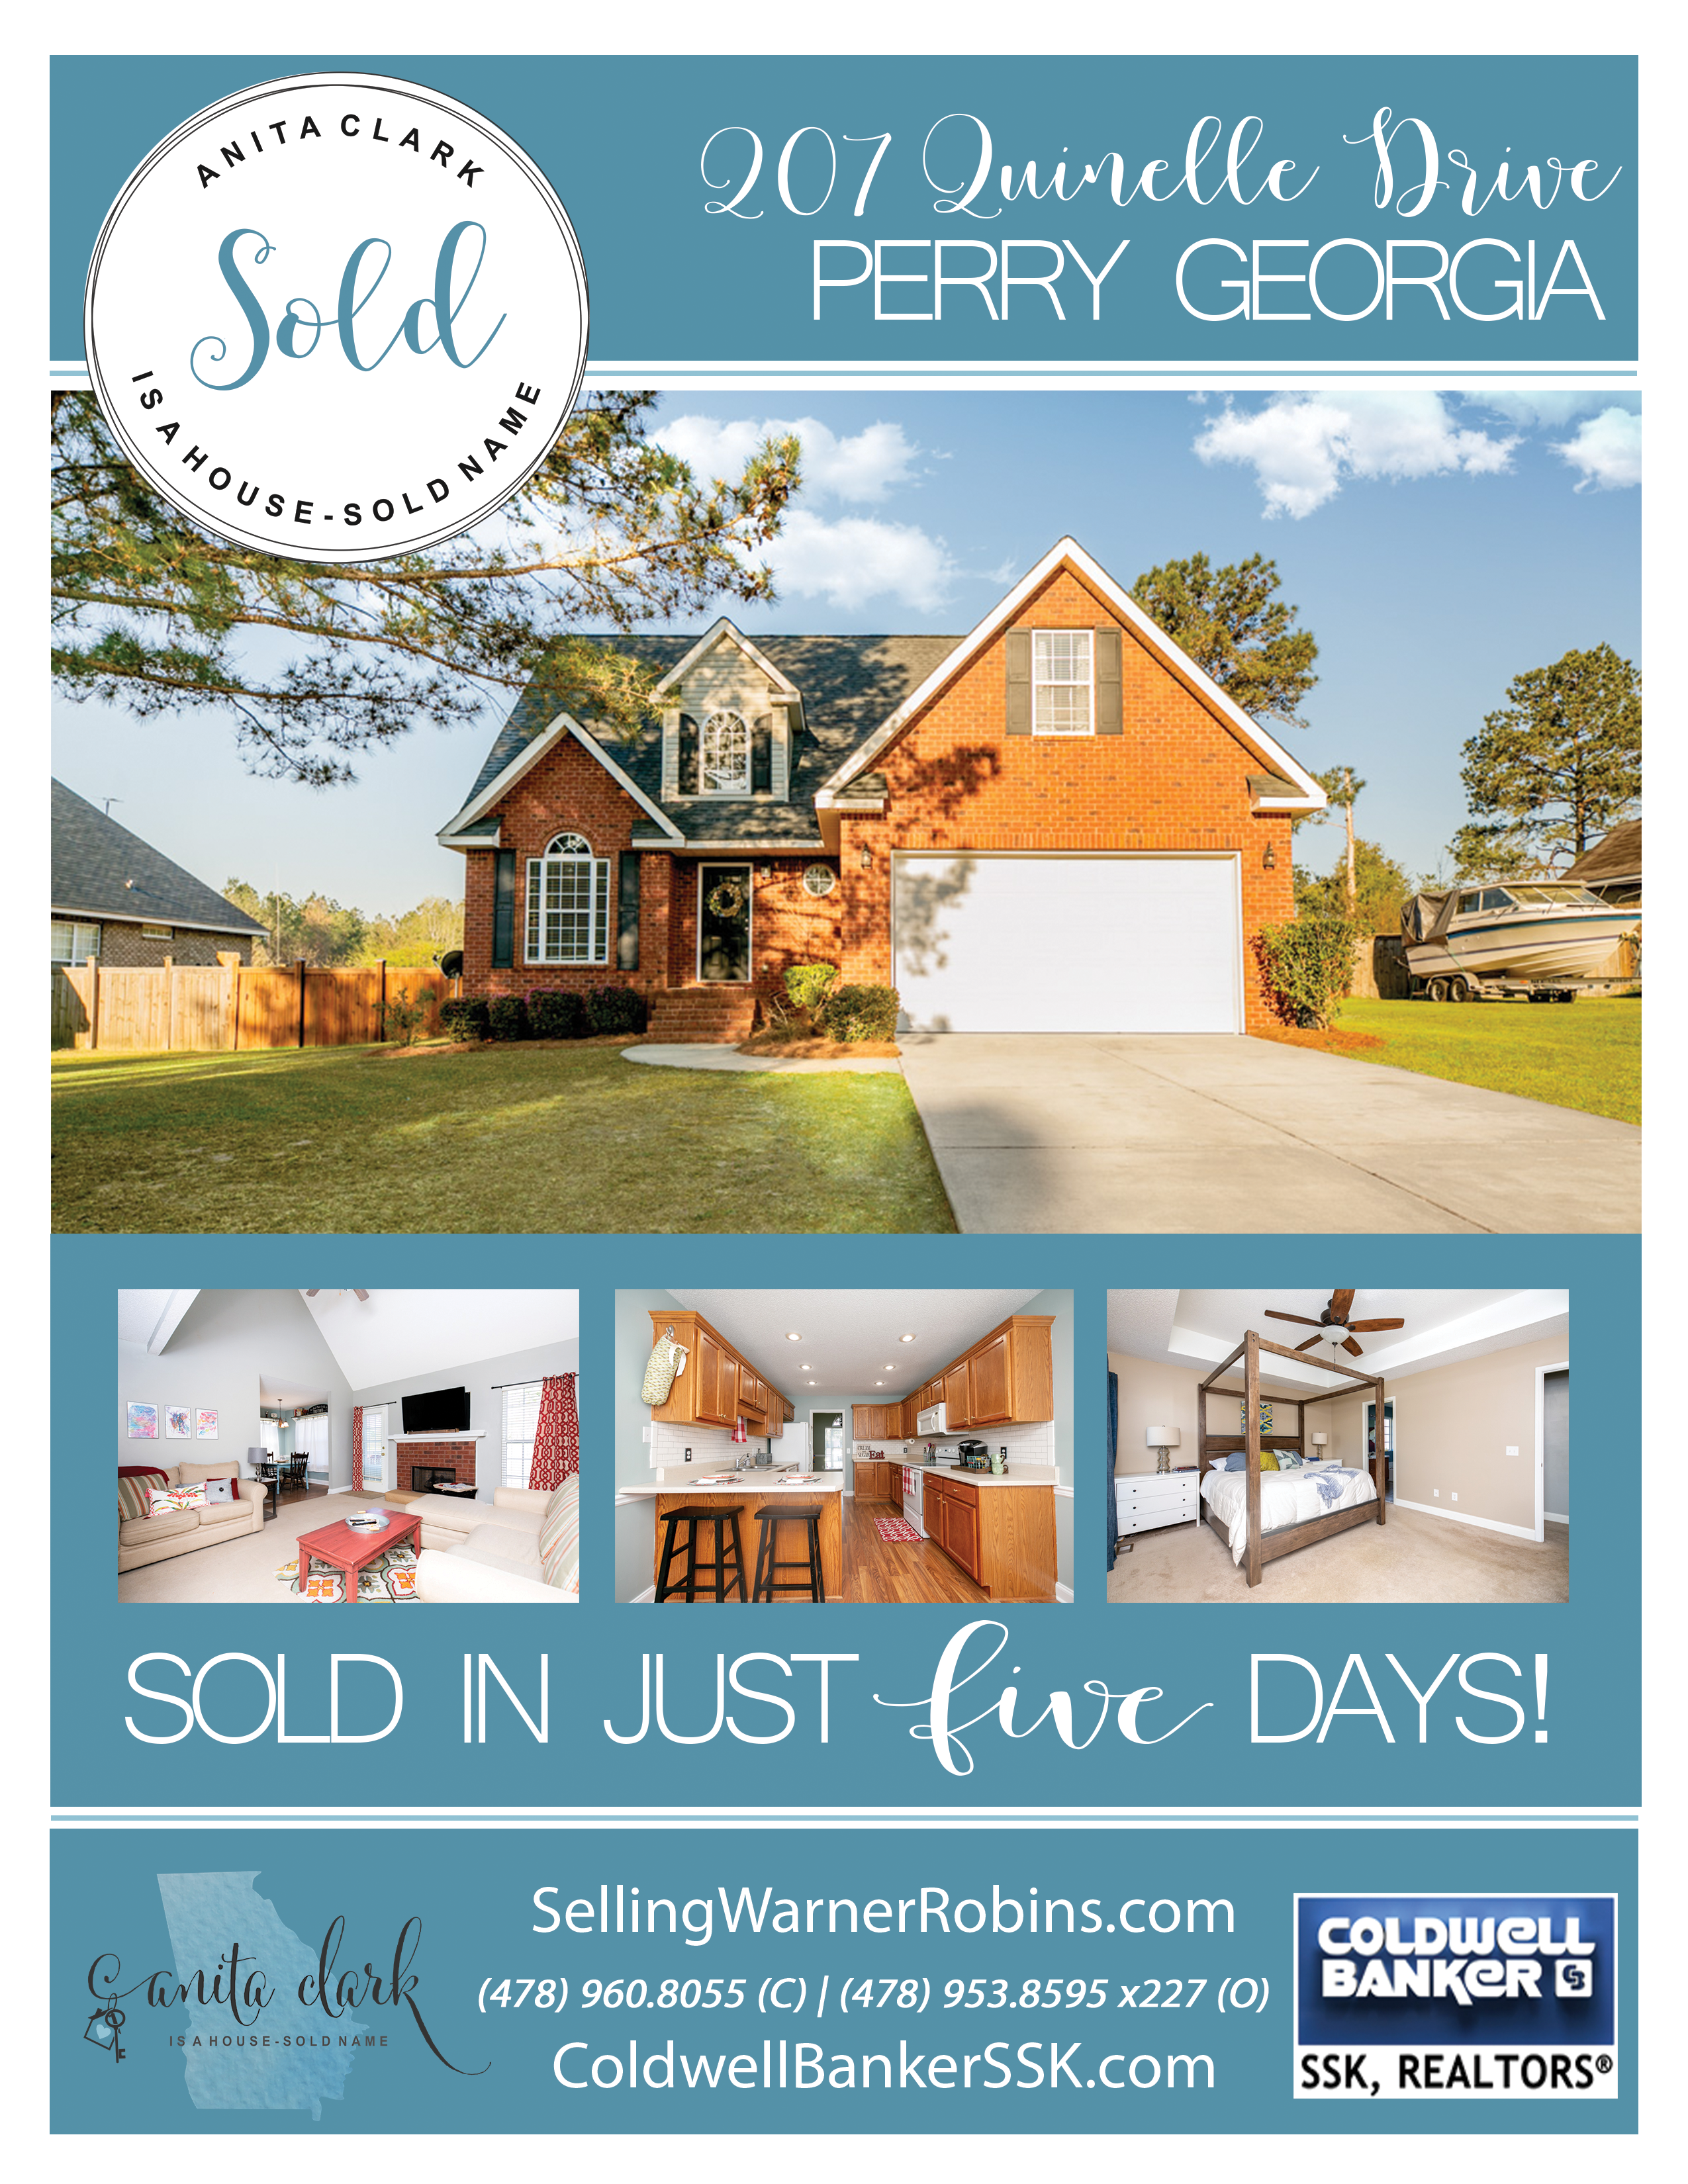 Sold in the Brendale Subdivision